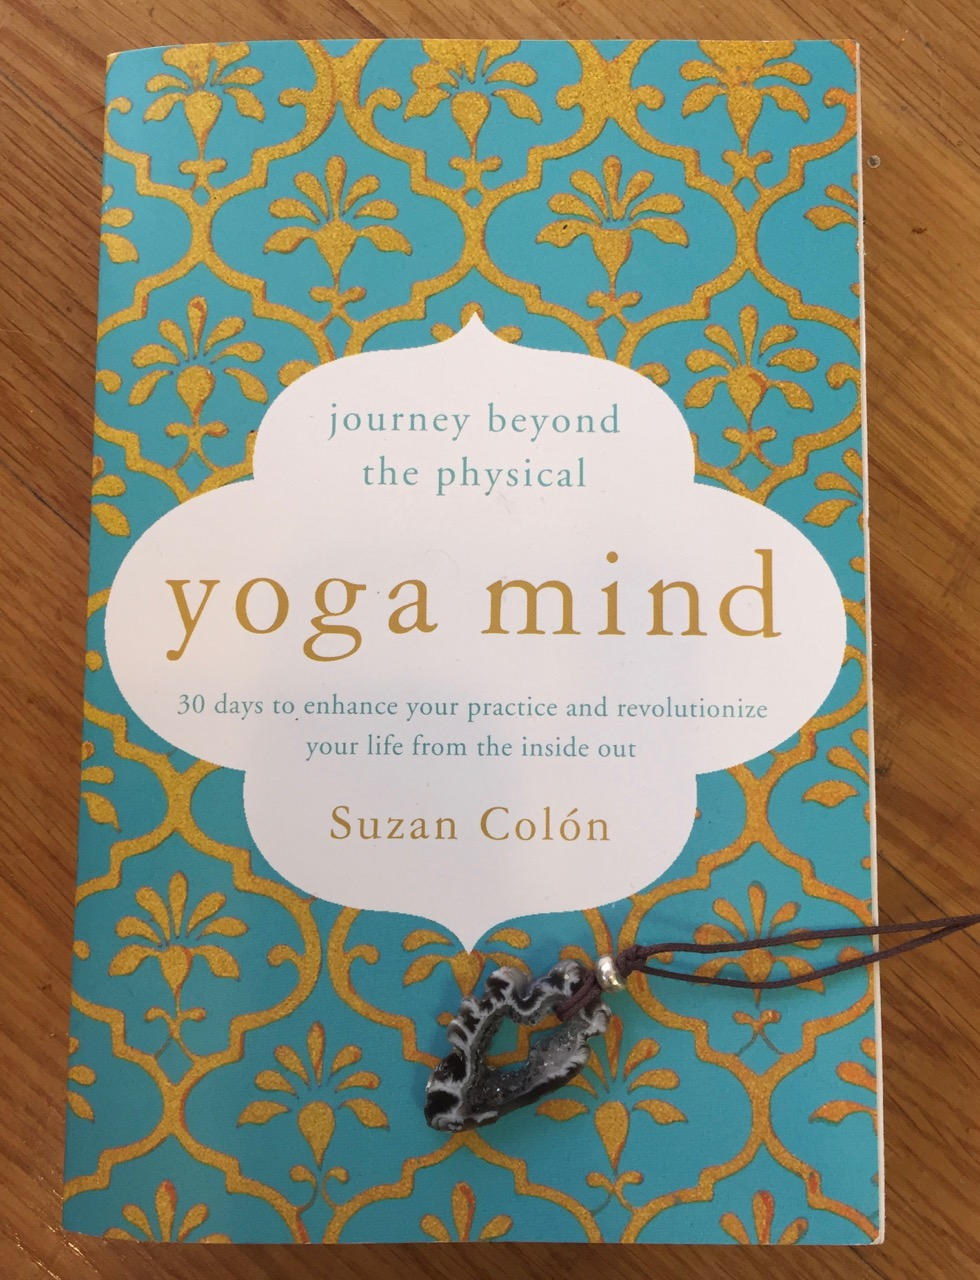 Autographed copy of Yoga Mind by  Suzan Colon  and a free private Yoga lesson.  Value: $175   VeryNYC  Geode Necklace  Value: $25.-  Minimum Bid $50.-, increments of $25.-